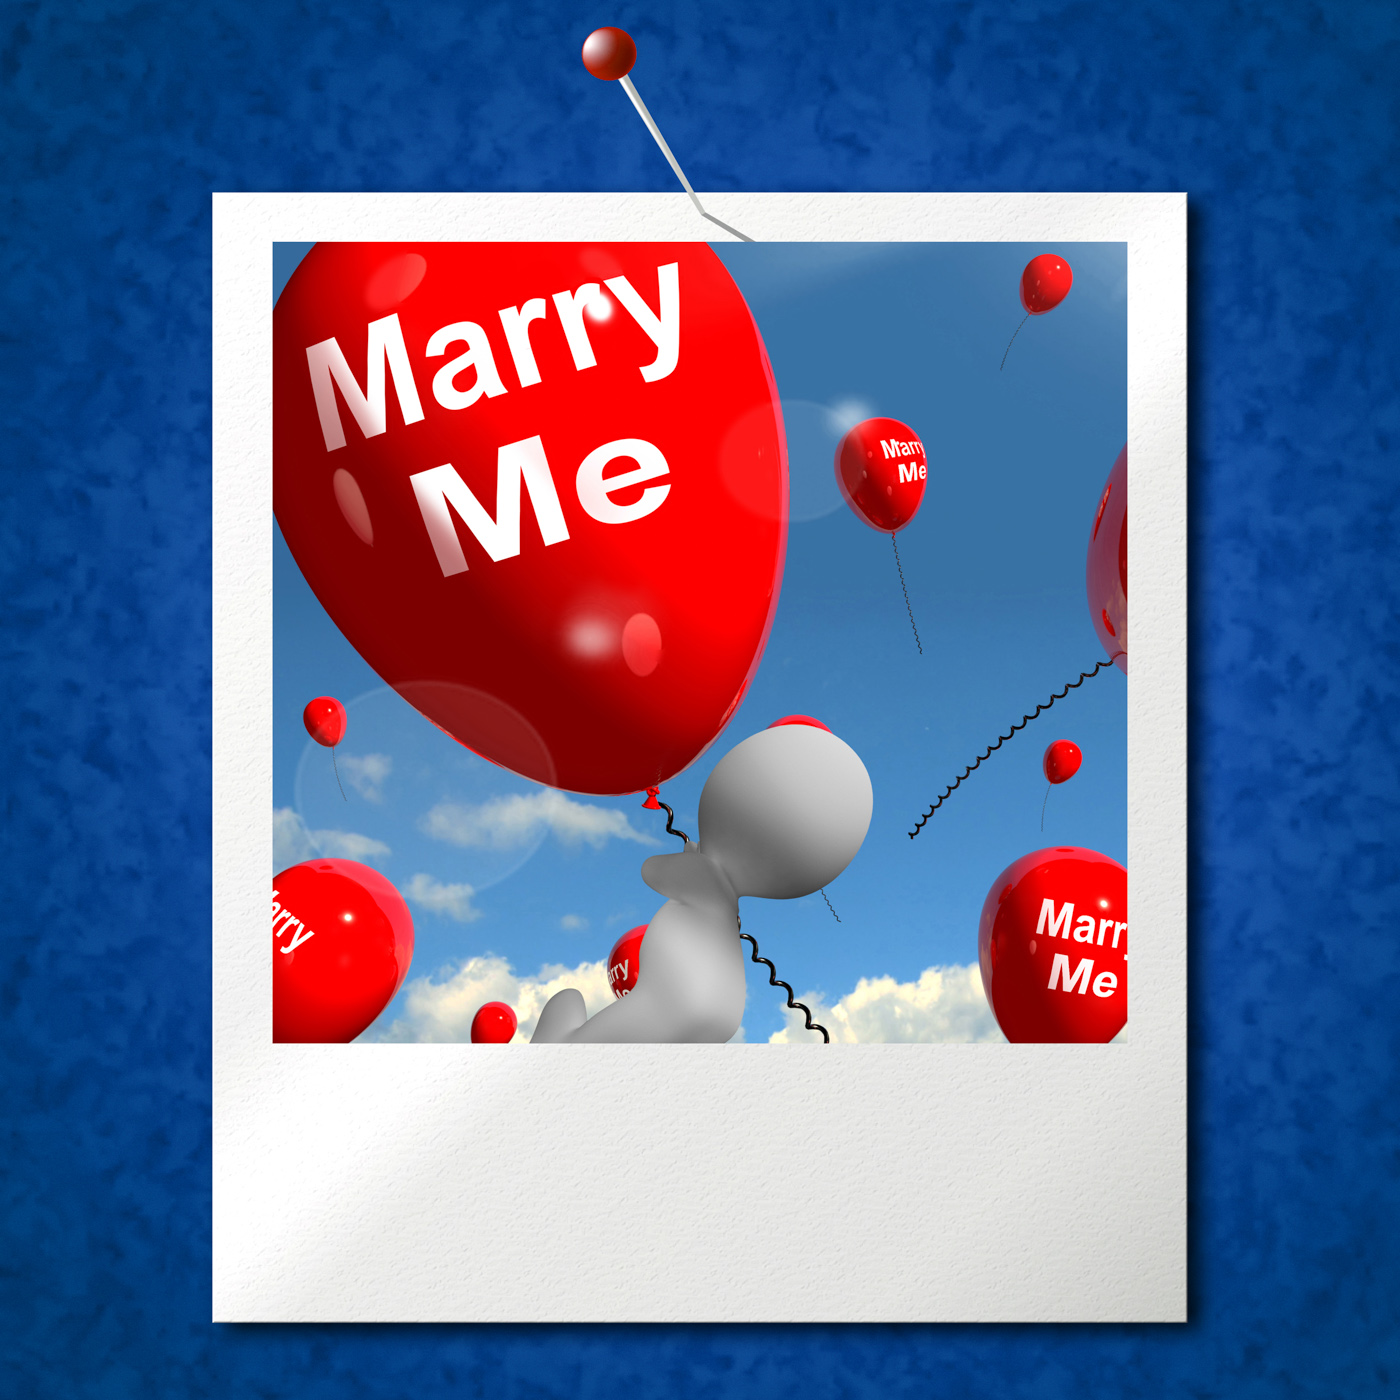 Marry me balloons photo represents engagement proposal for lovers